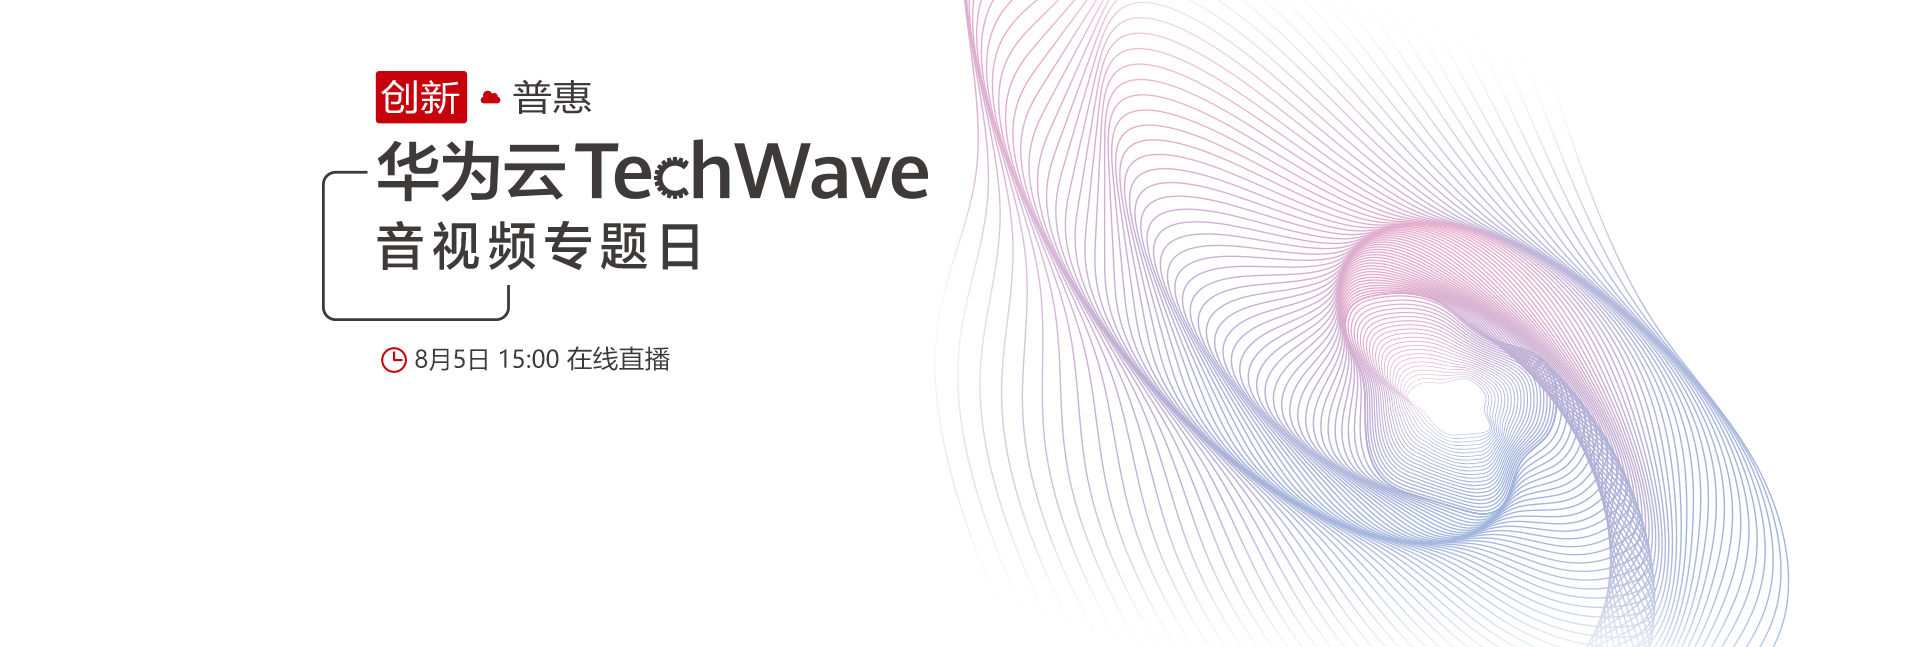 hwcloud techwave rtc p2